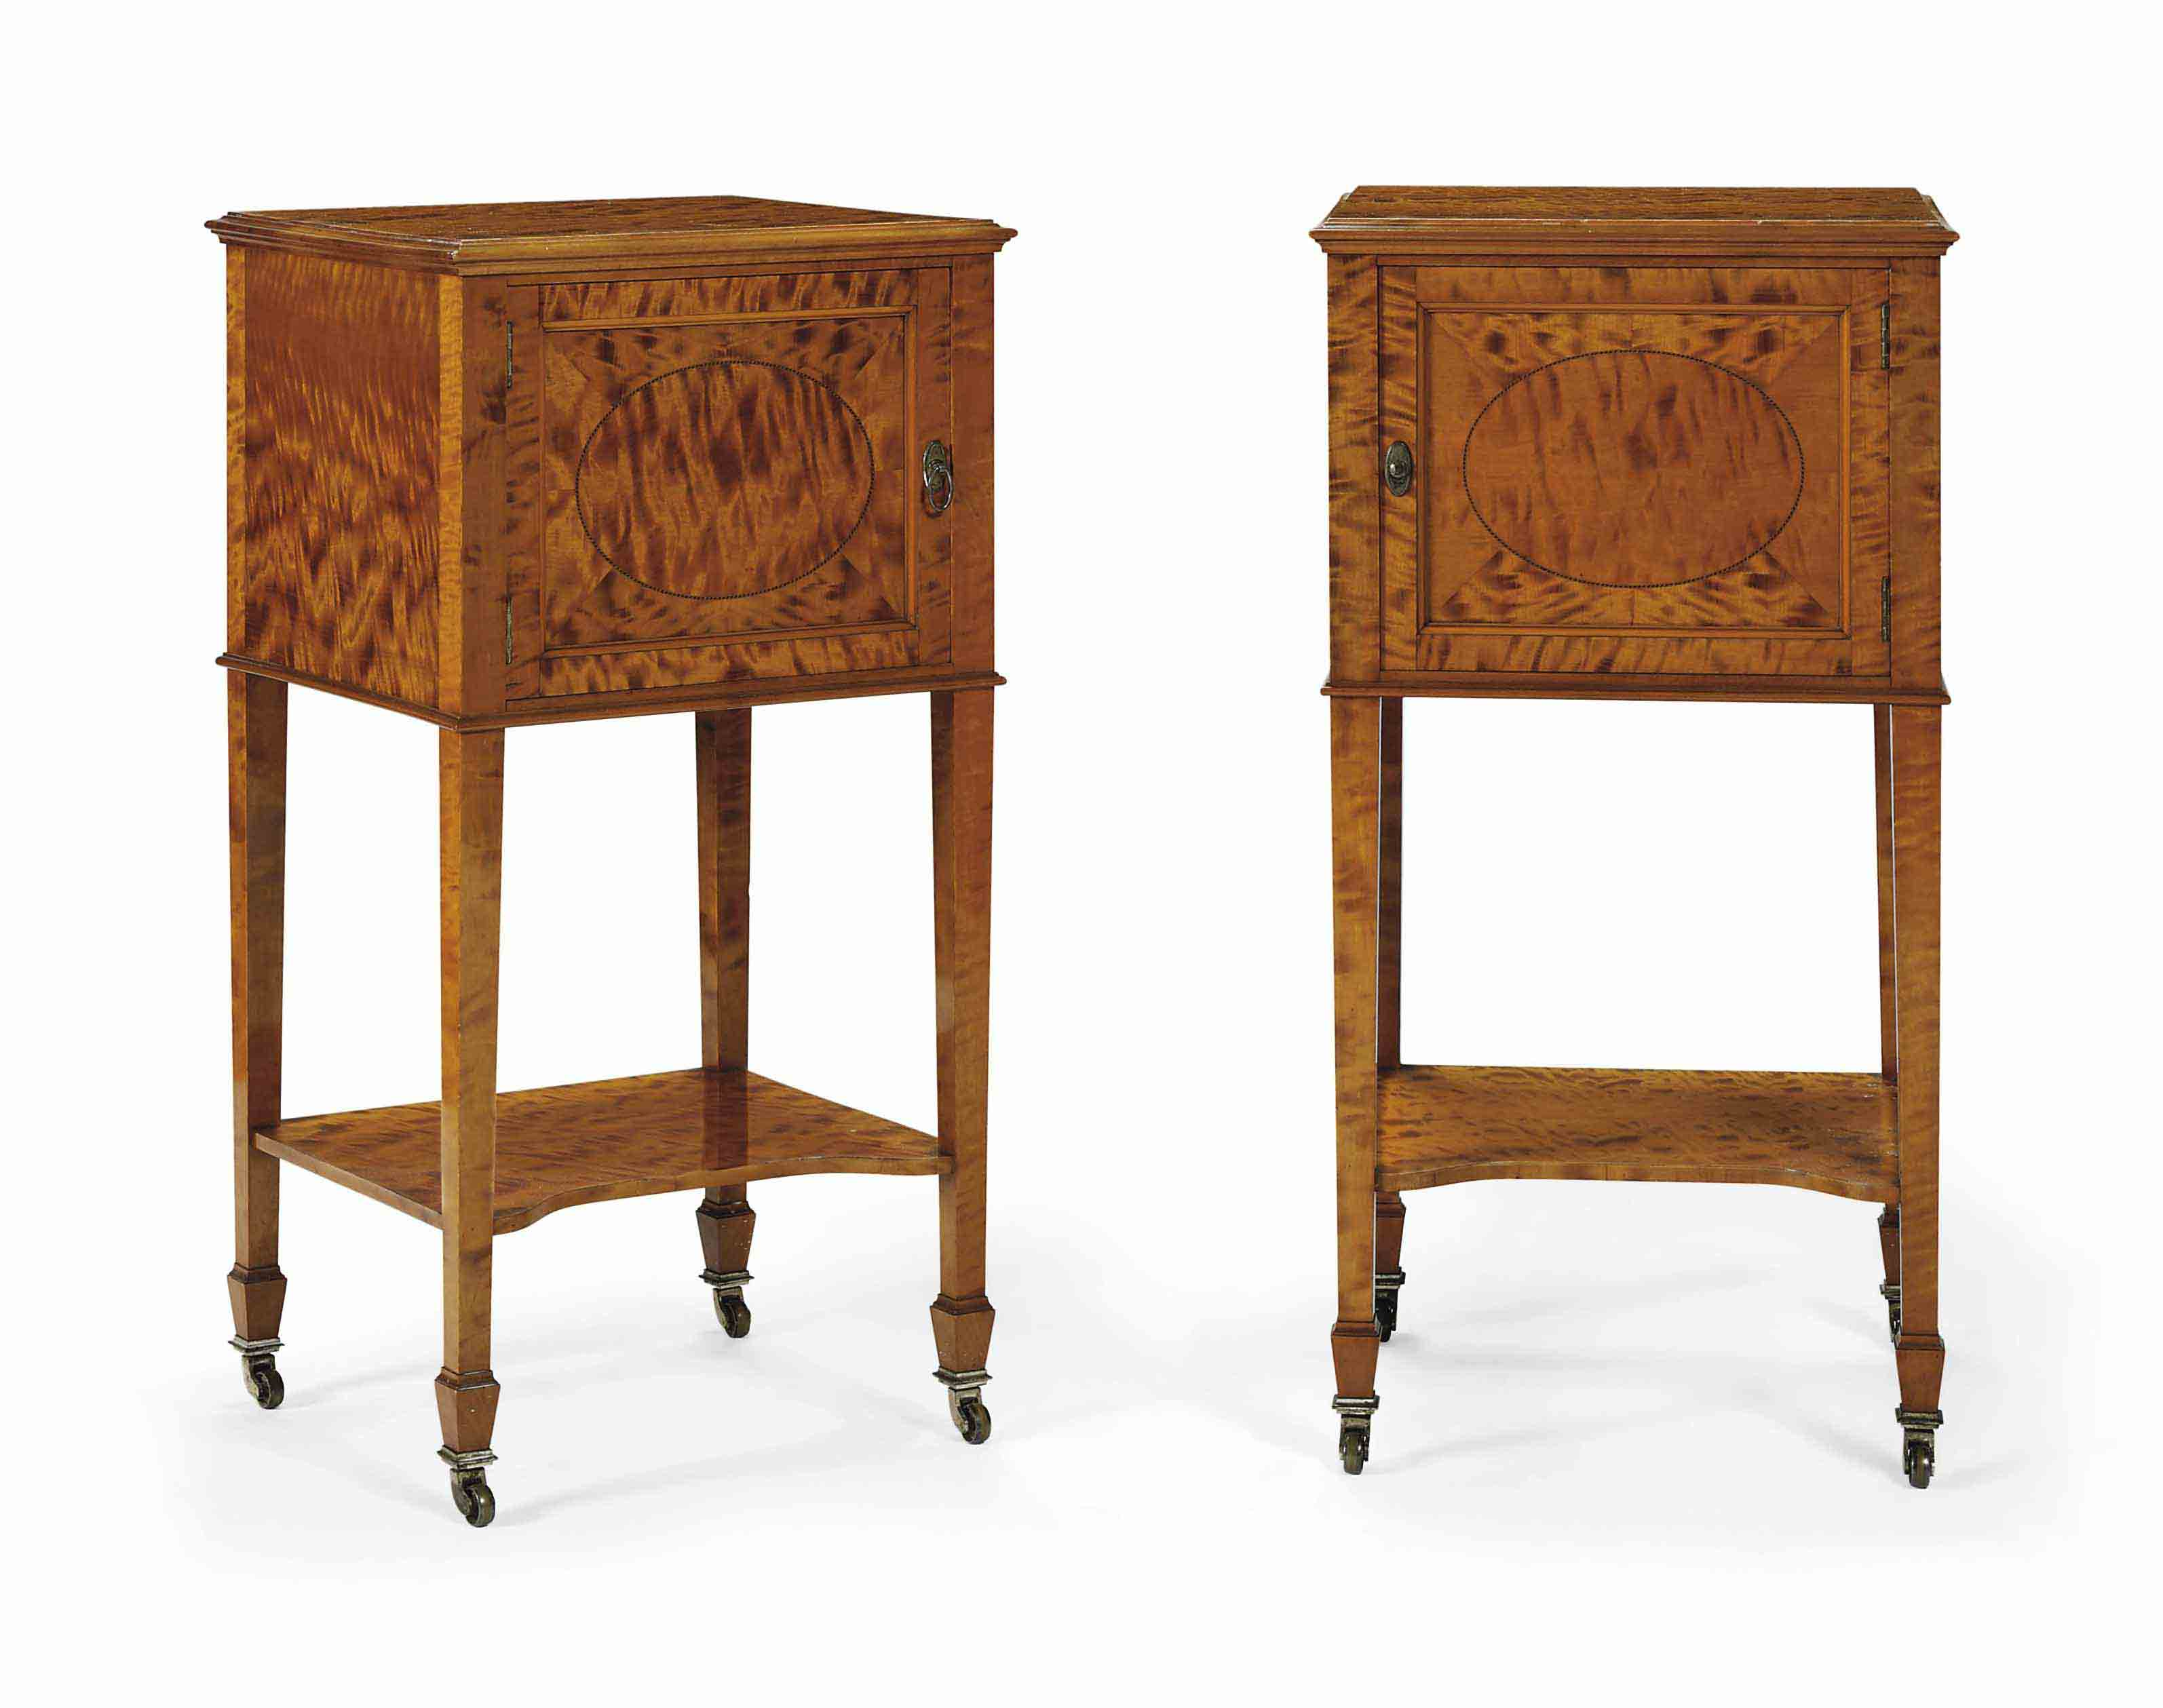 A PAIR OF EDWARDIAN SATINWOOD BEDSIDE CABINETS